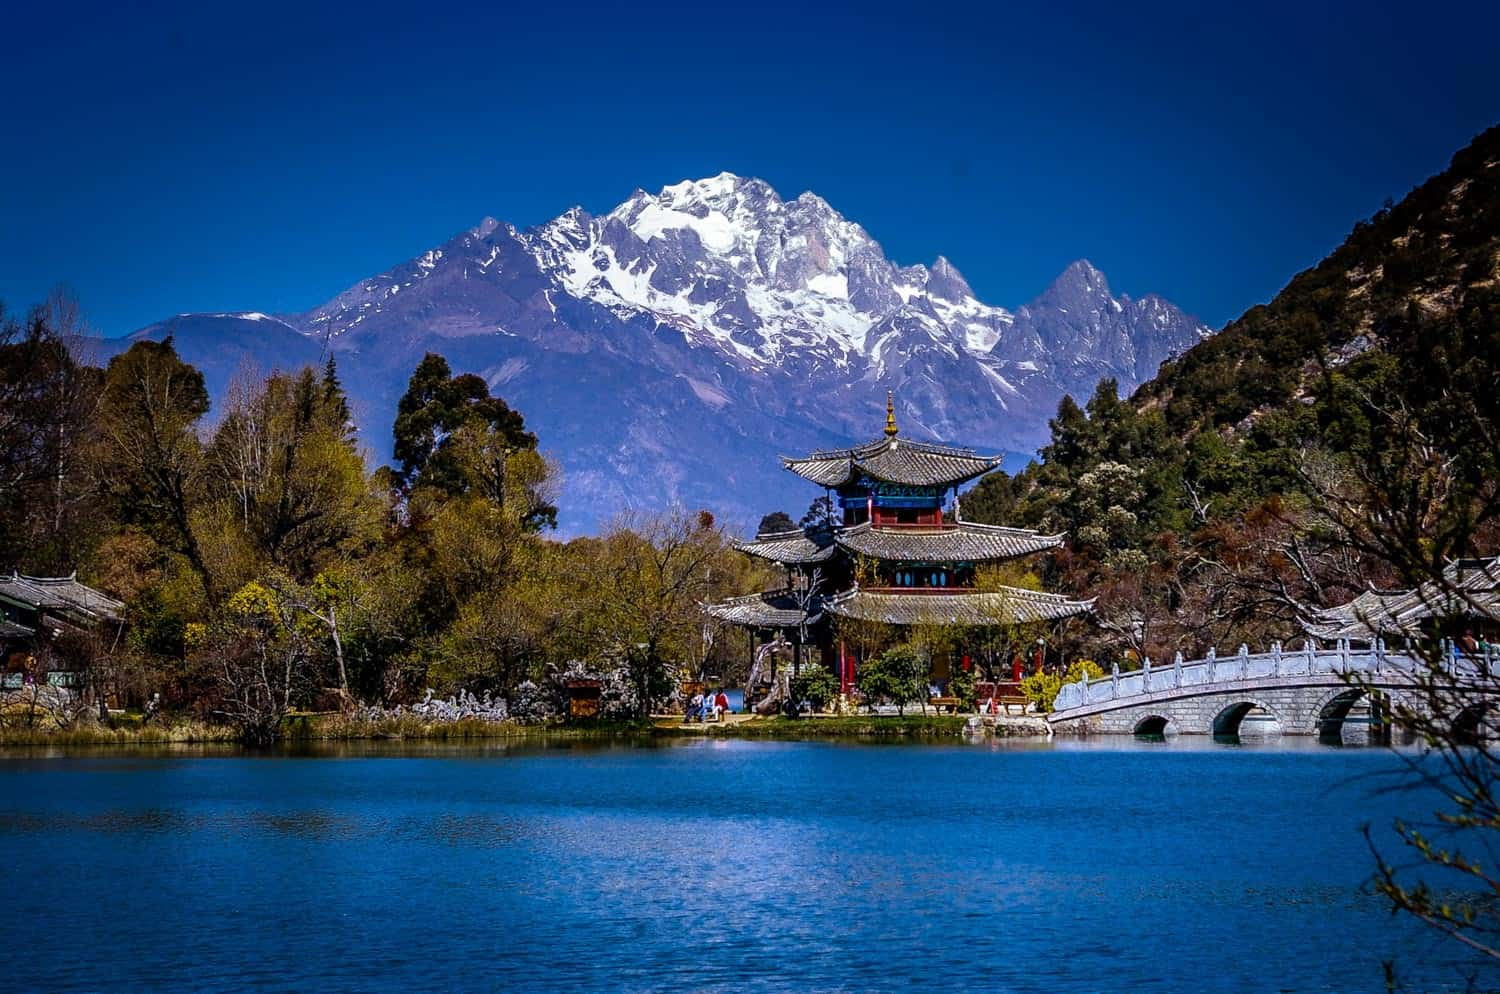 Jade Spring Park (Black Dragon Pool Park) with theJade Dragon Snow Mountain in the back